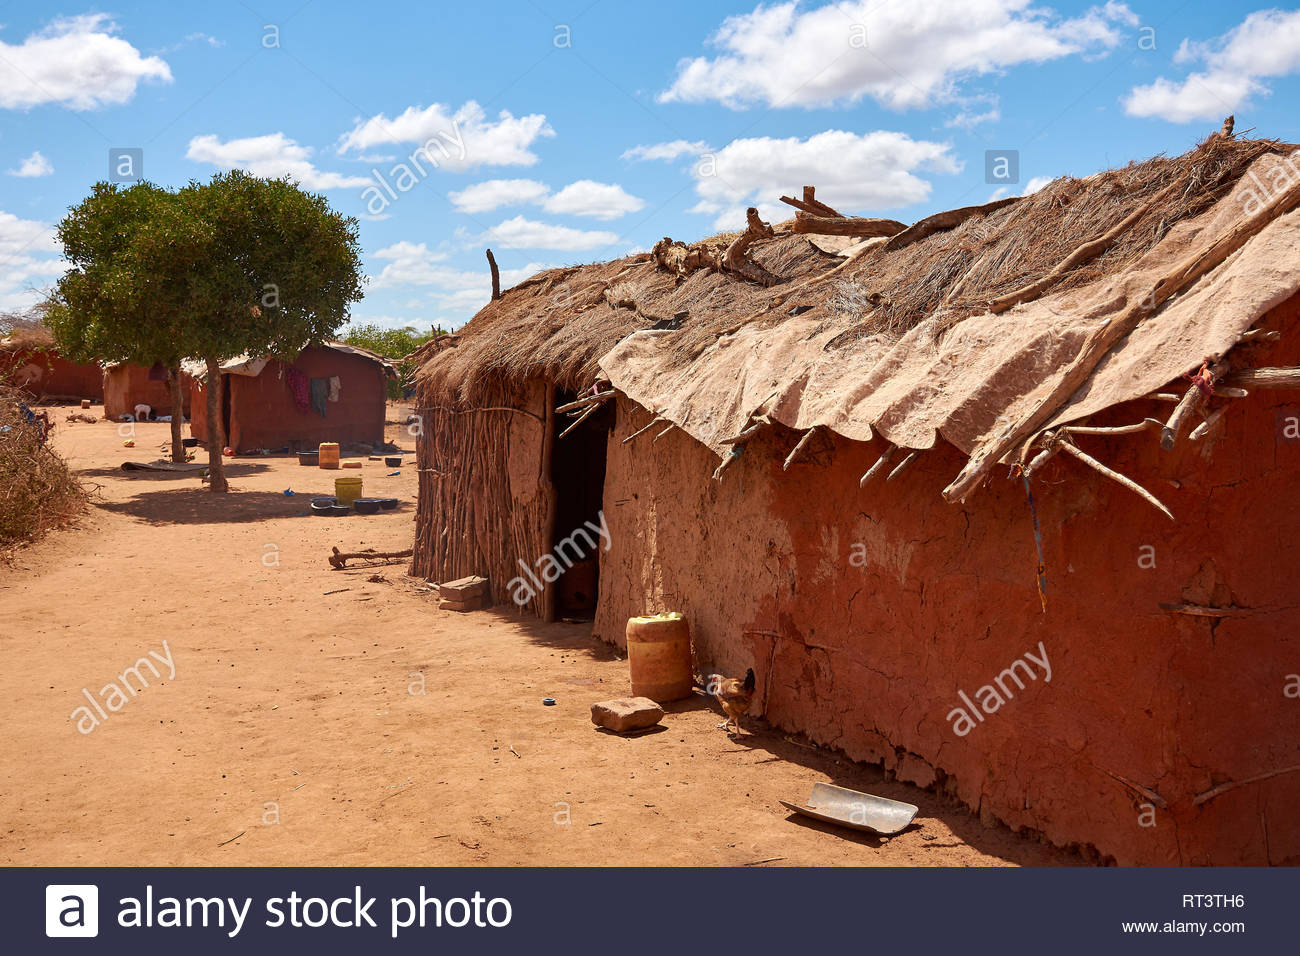 View of an old masai village with huts of clay. Poverty and misery in Kenya in Africa - Stock Image